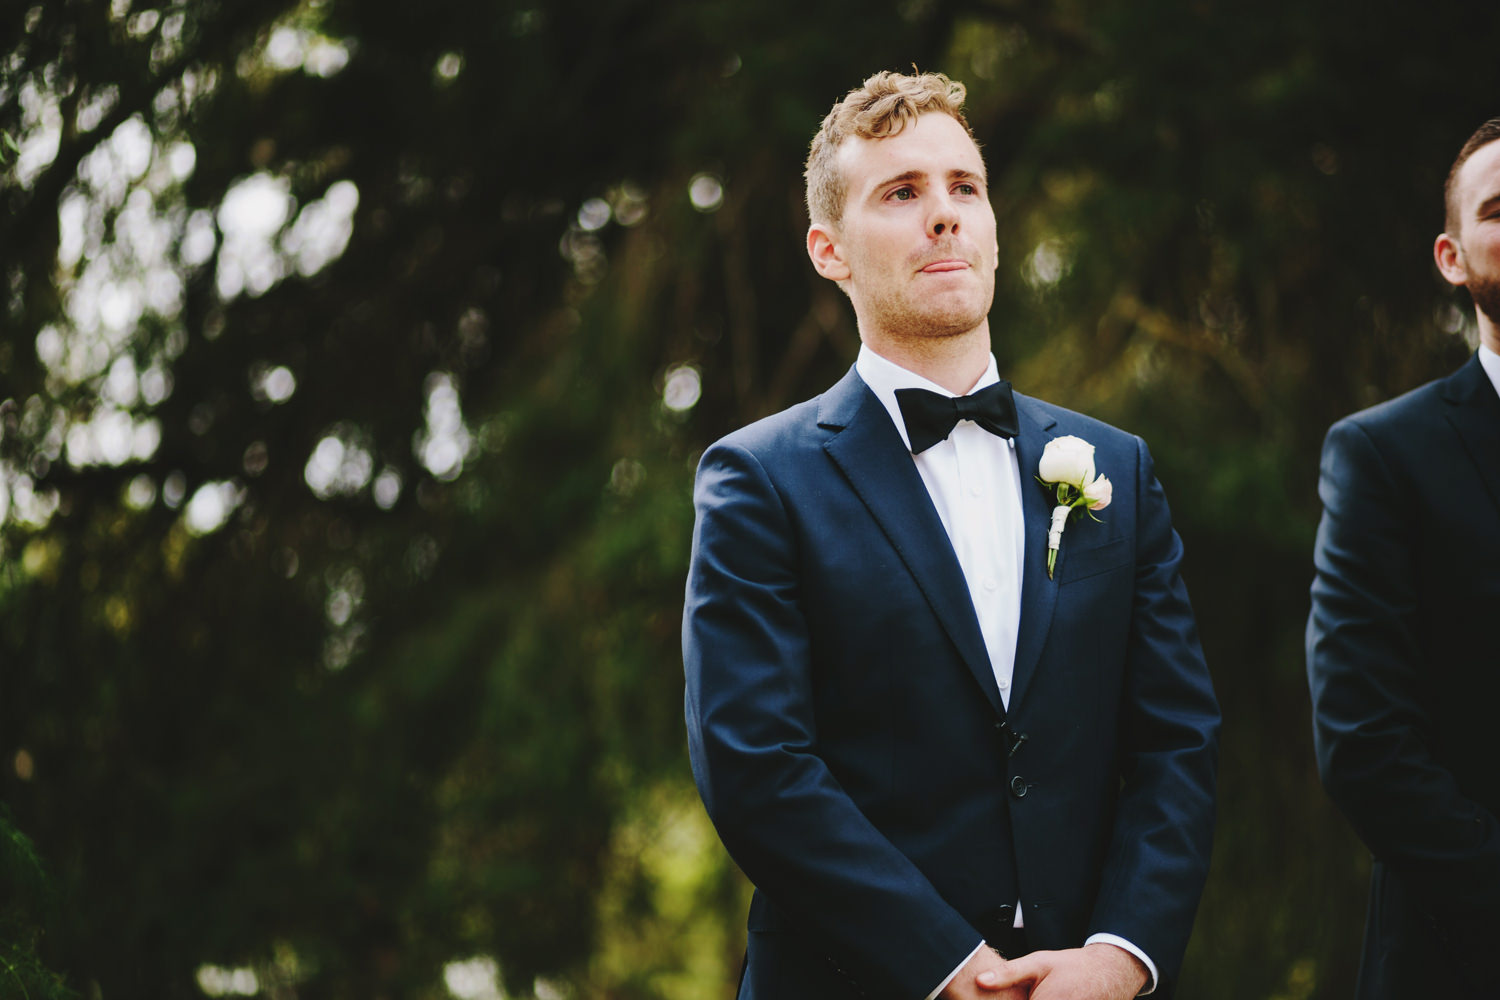 032-Melbourne_Wedding_Photographer_Jonathan_Ong_Best2015.jpg